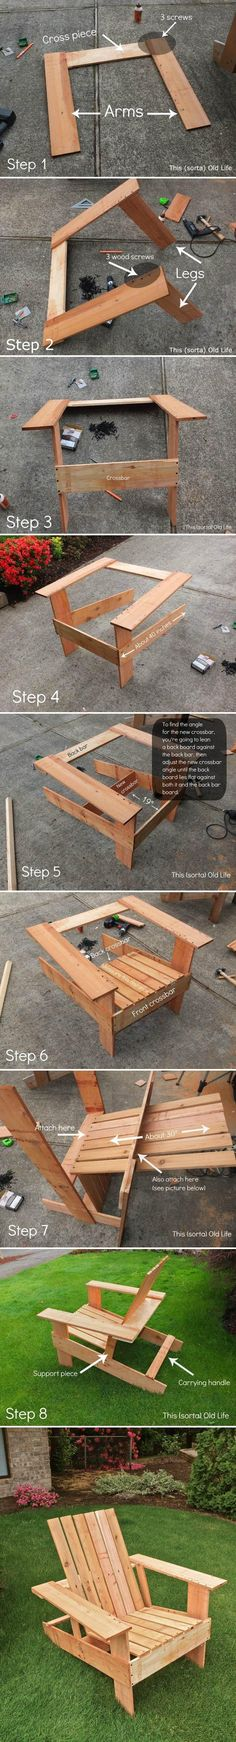 DIY lawn chair #tutorial